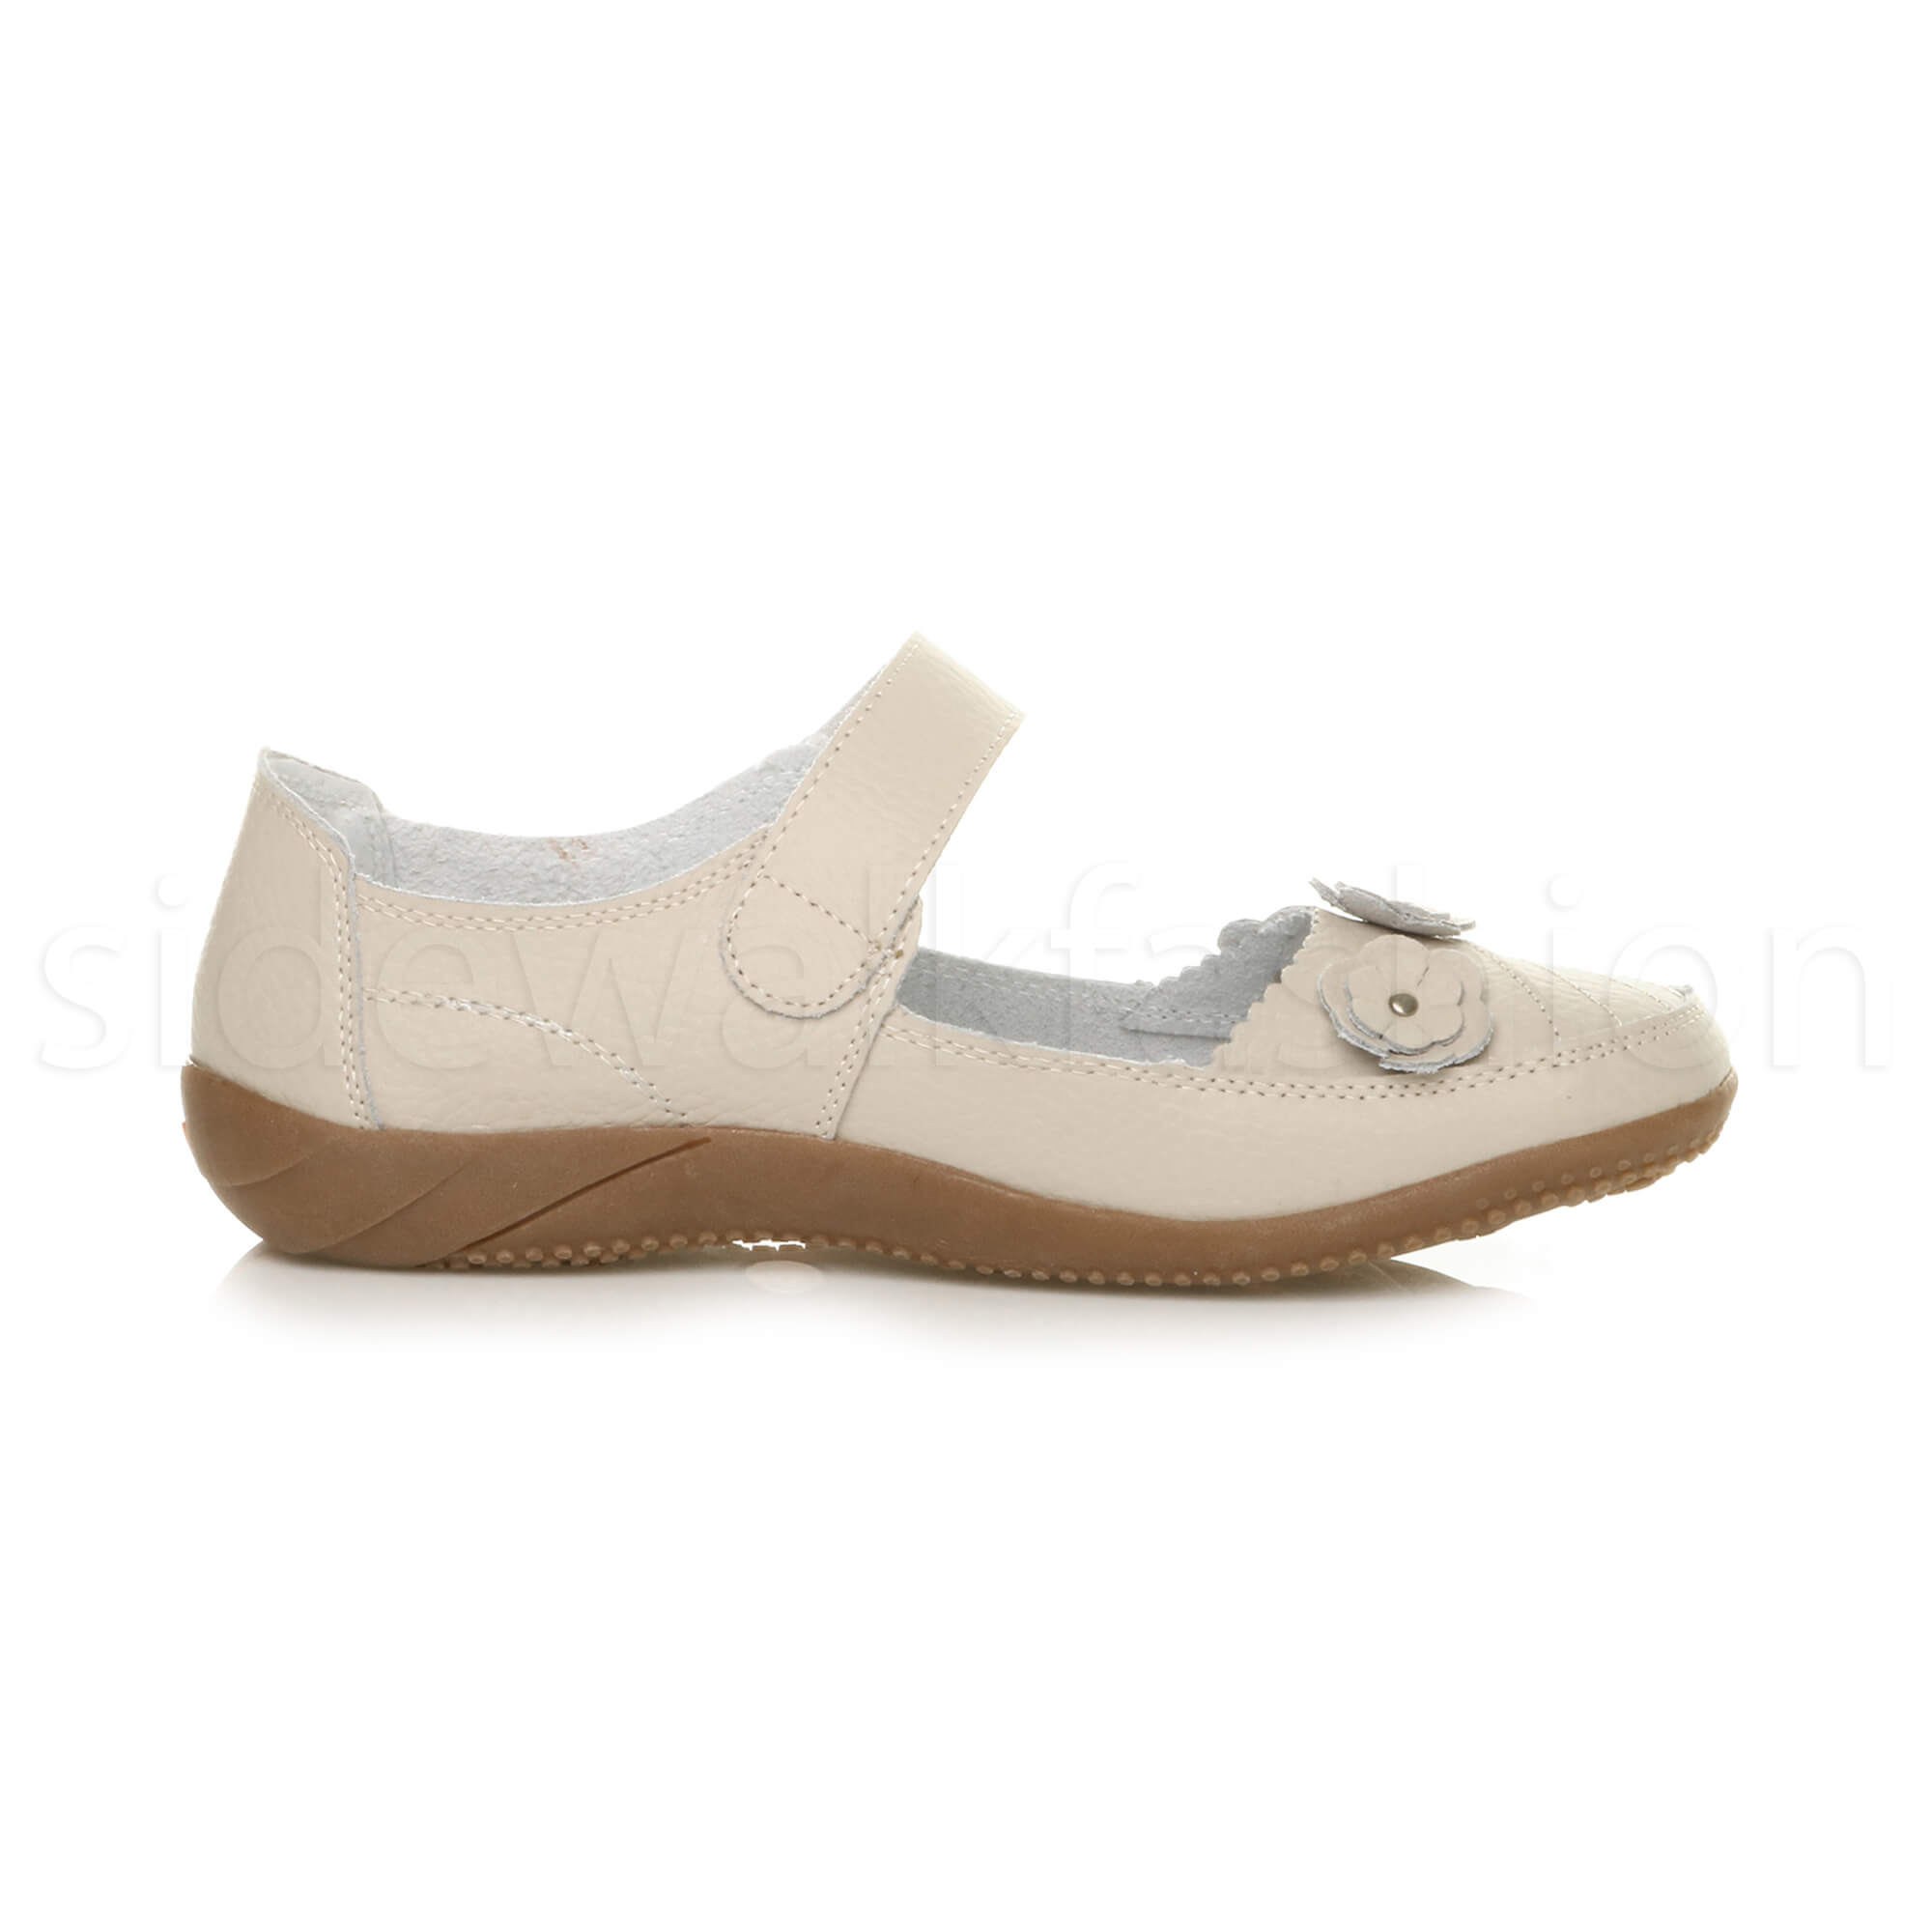 Womens-ladies-leather-comfort-walking-casual-sandals-mary-jane-strap-shoes-size thumbnail 39